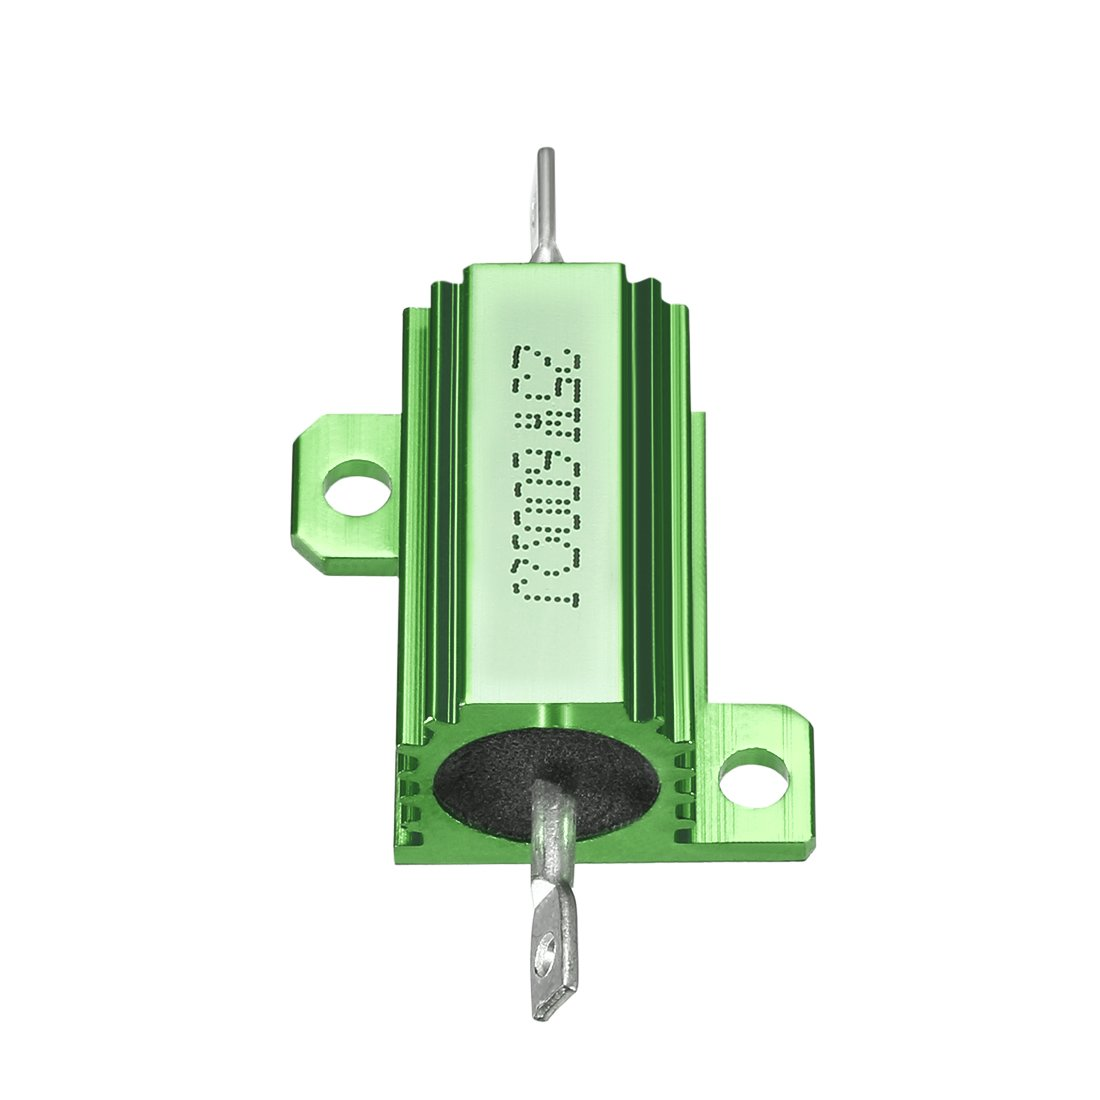 uxcell 25W 600 Ohm 5/% Aluminum Housing Resistor Screw Tap Chassis Mounted Aluminum Case Wirewound Resistor Load Resistors Green 1 pcs